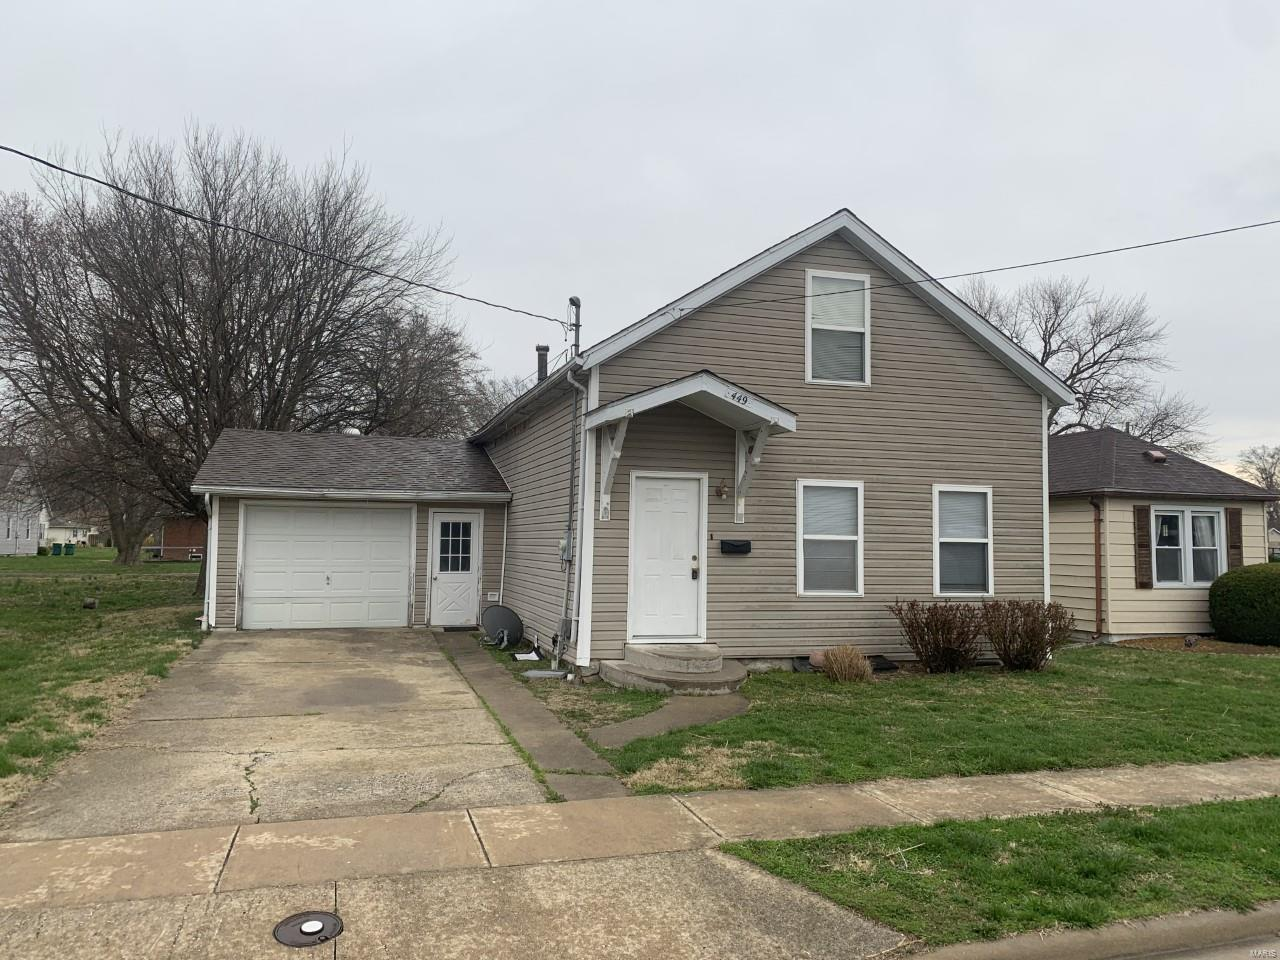 449 N 5th Street Property Photo - Breese, IL real estate listing